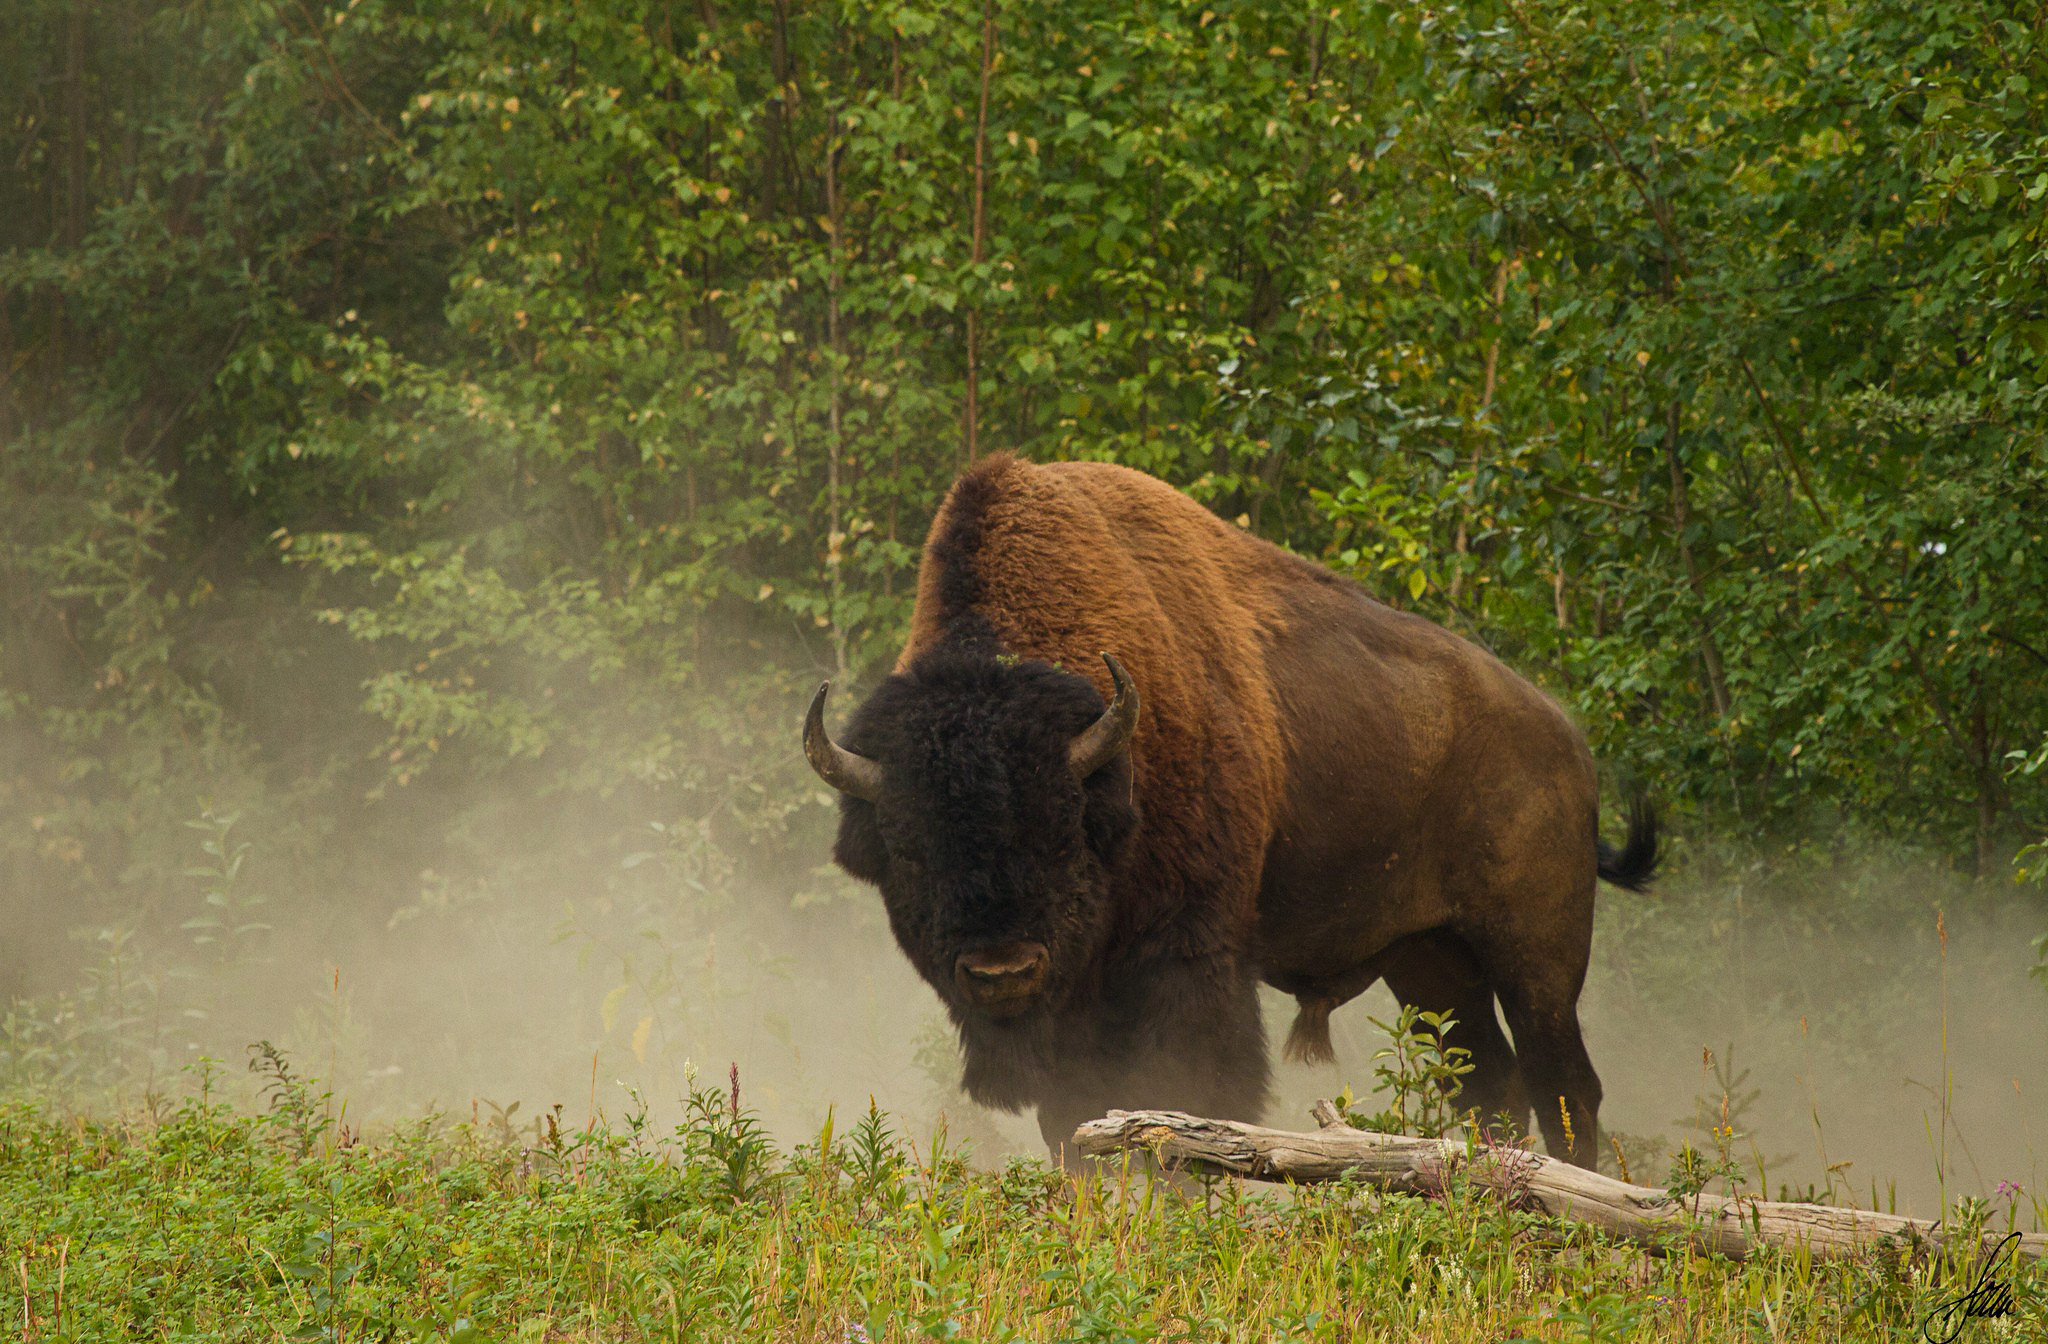 Bison Full HD Wallpaper and Background Image | 2048x1344 ...